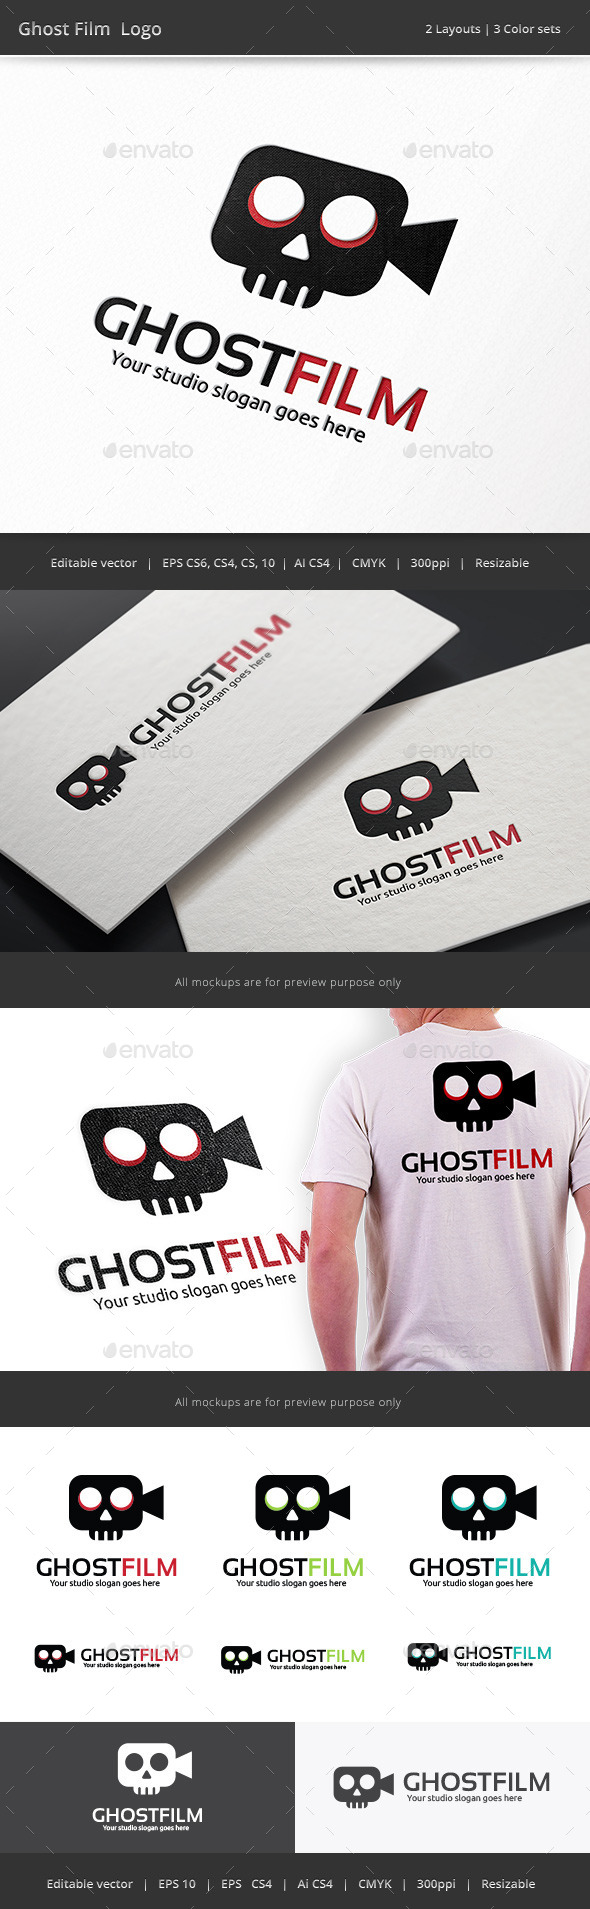 GraphicRiver Ghost Film Logo 9591603